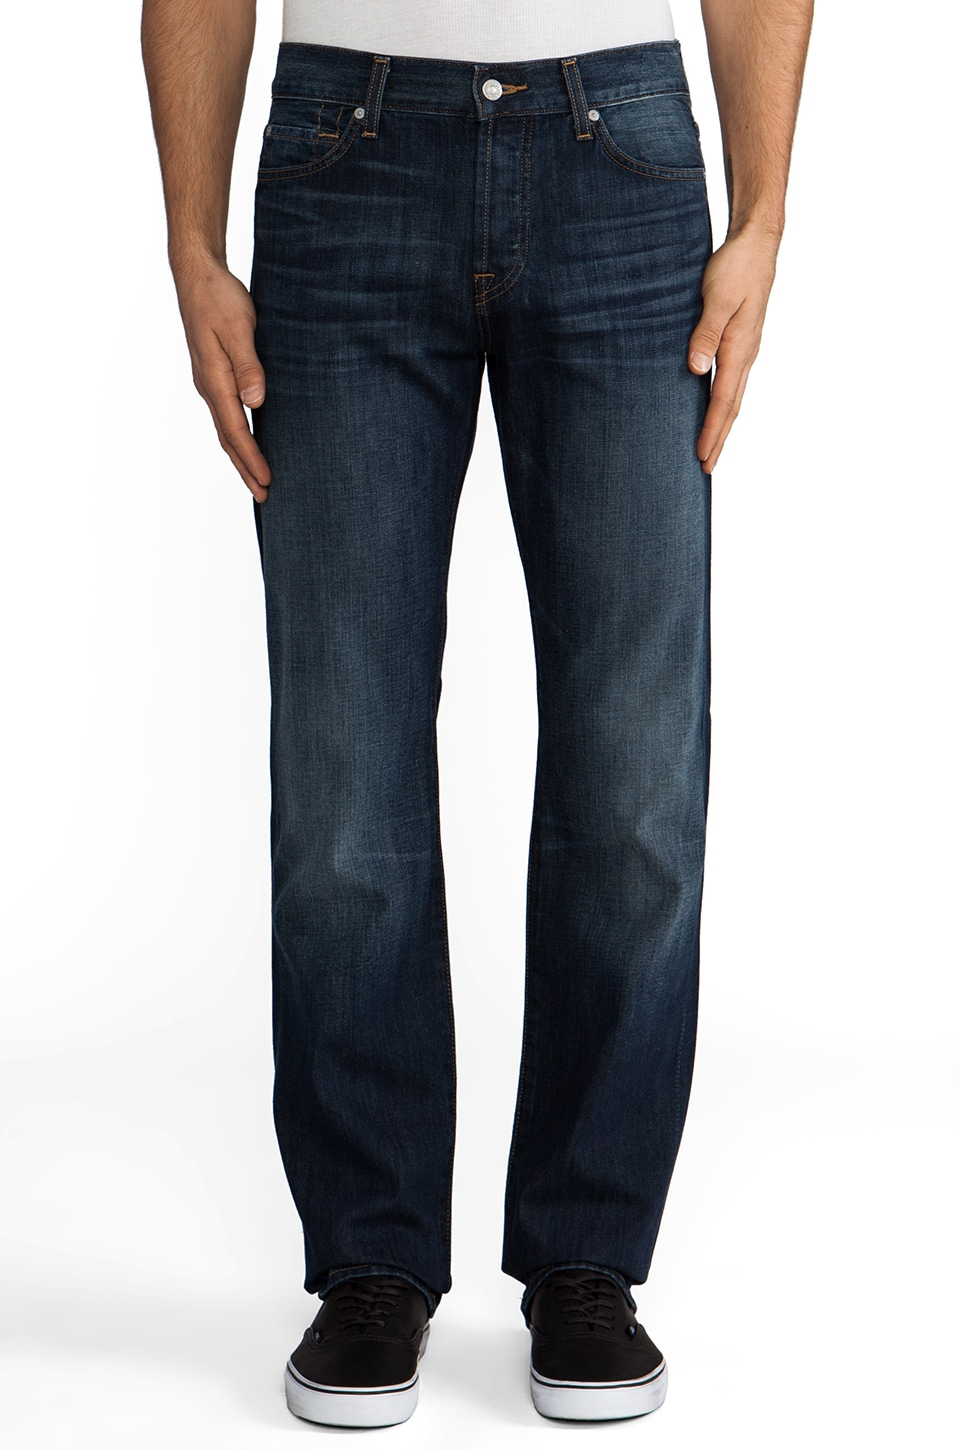 7 For All Mankind Standard in Cold Springs